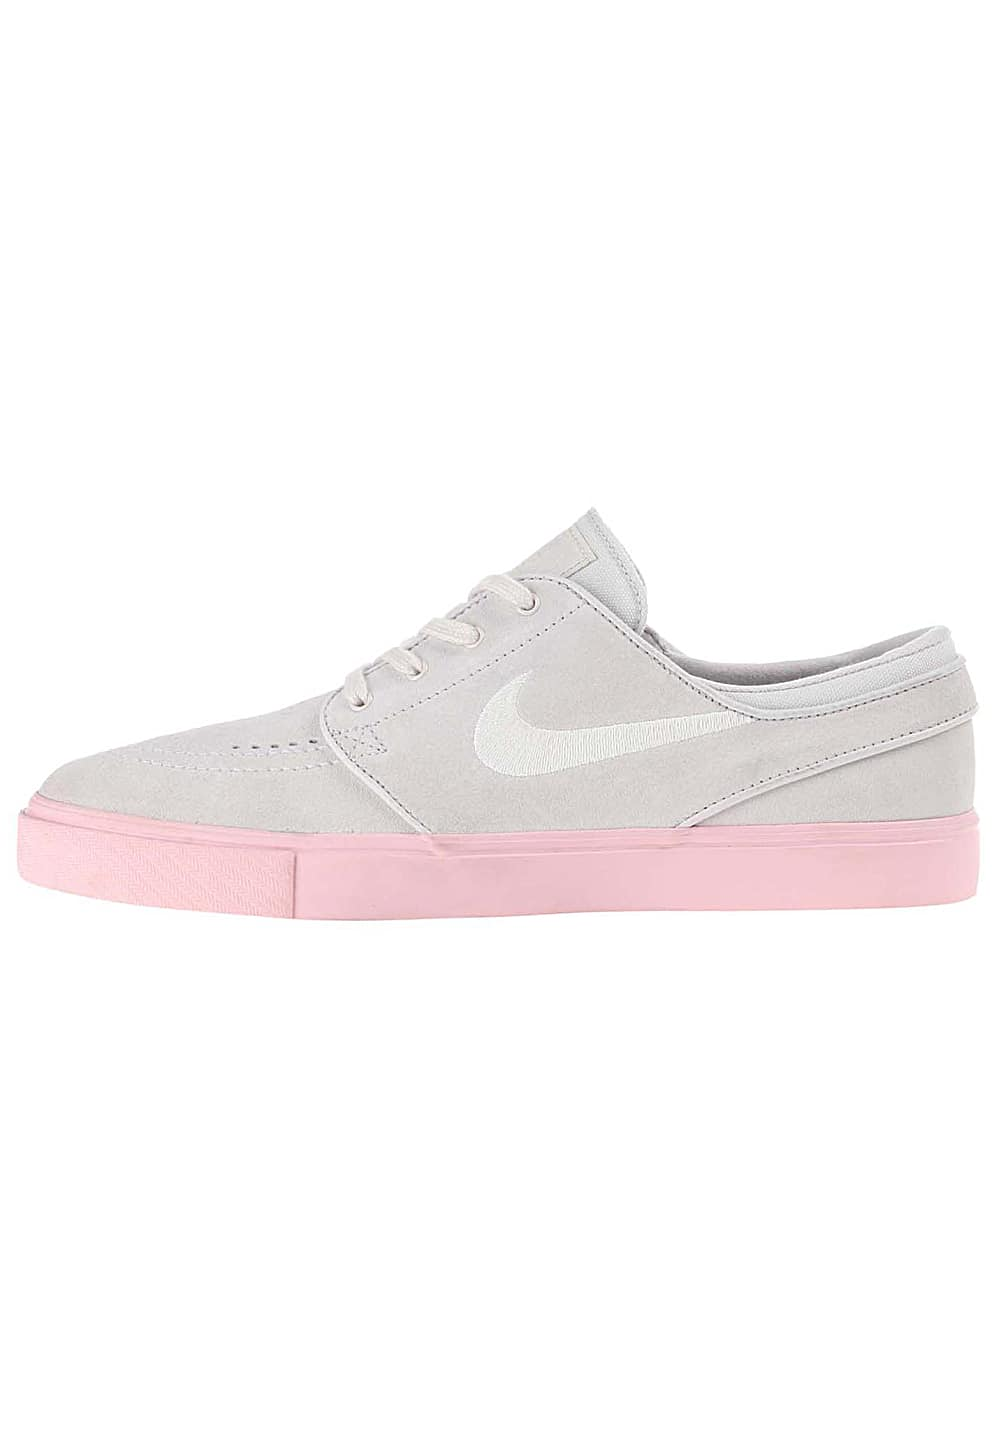 Nike SB Zoom Stefan Janoski Shoes Vast GreyPhantom Bubblegum Bubblegum